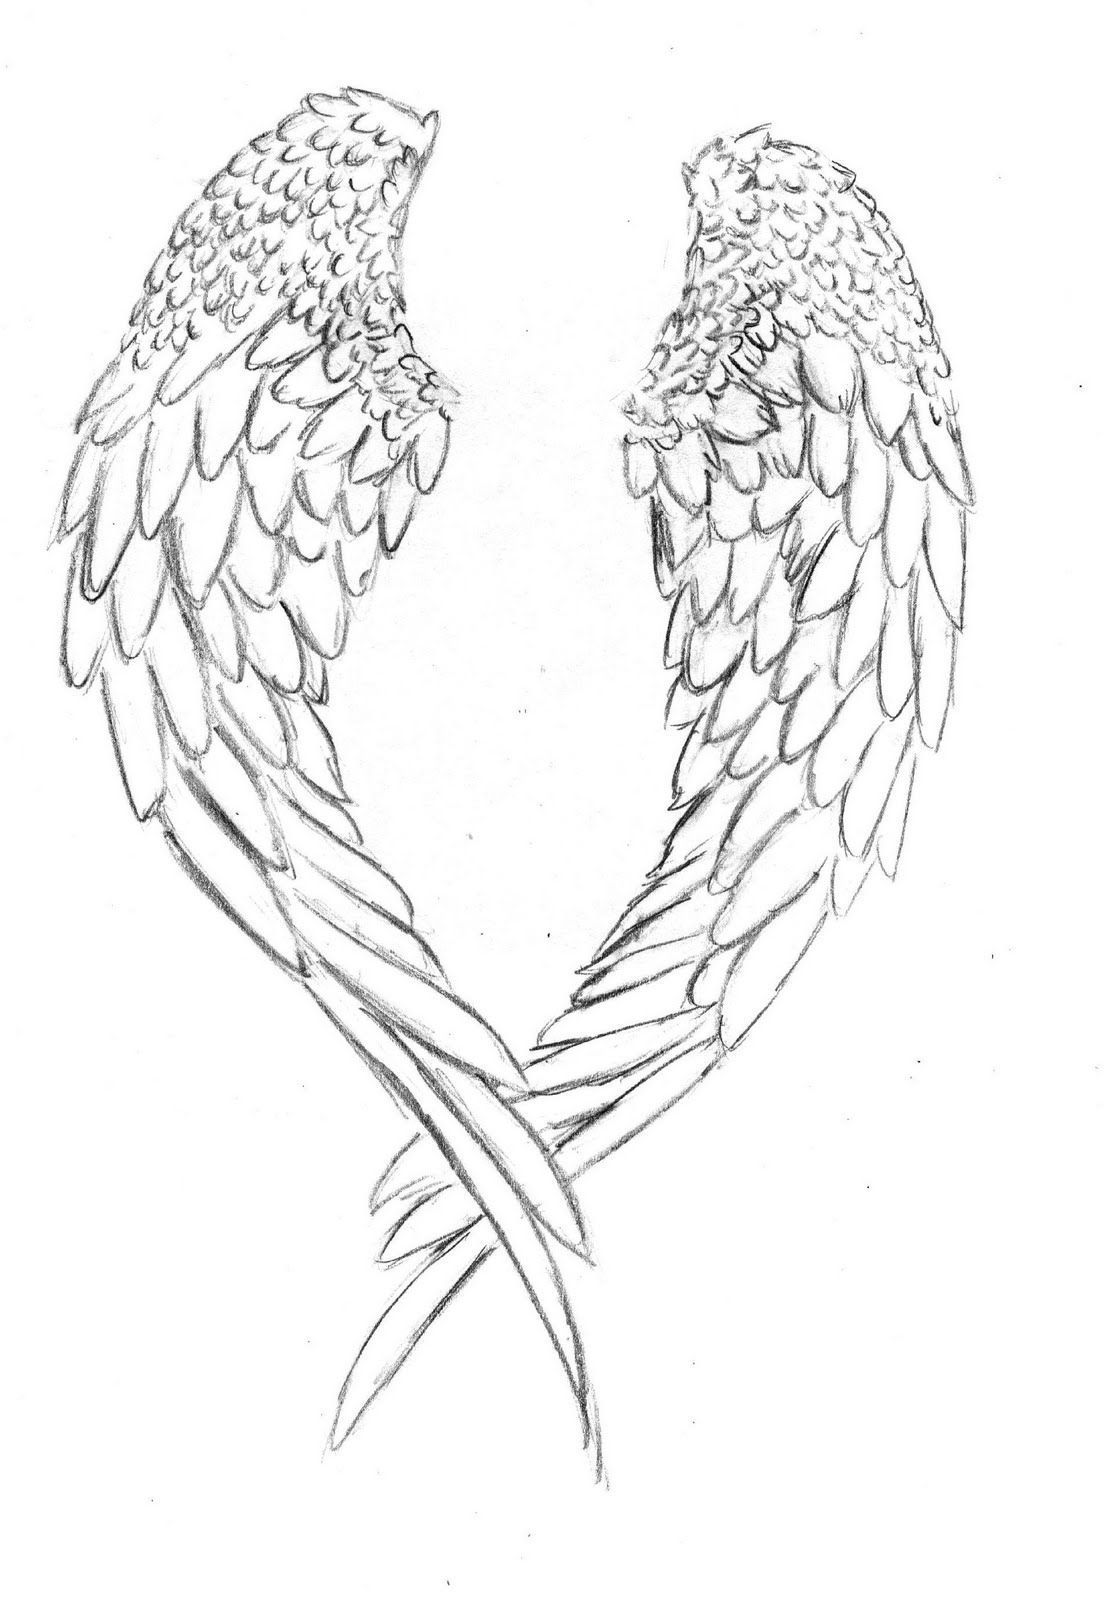 Angel Wing Coloring Page Az Coloring Pages Coloring Pages Of Crosses With Wings Coloring Pages For Adul Angel Wings Tattoo Wings Drawing Angel Wings Drawing